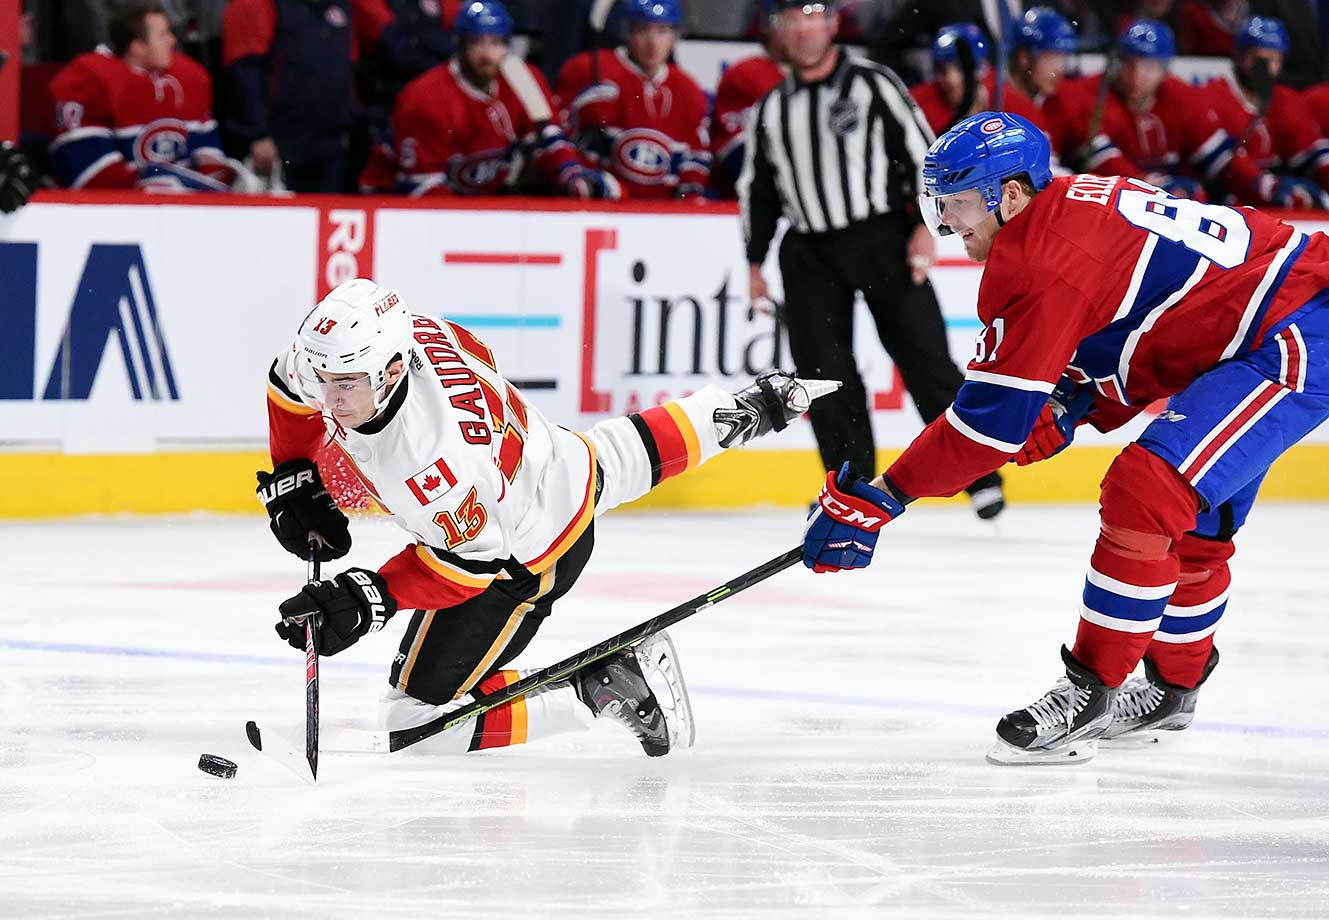 Johnny Gaudreau of the Calgary Flames tries to keep the puck from Lars Eller of the Montreal Canadiens.